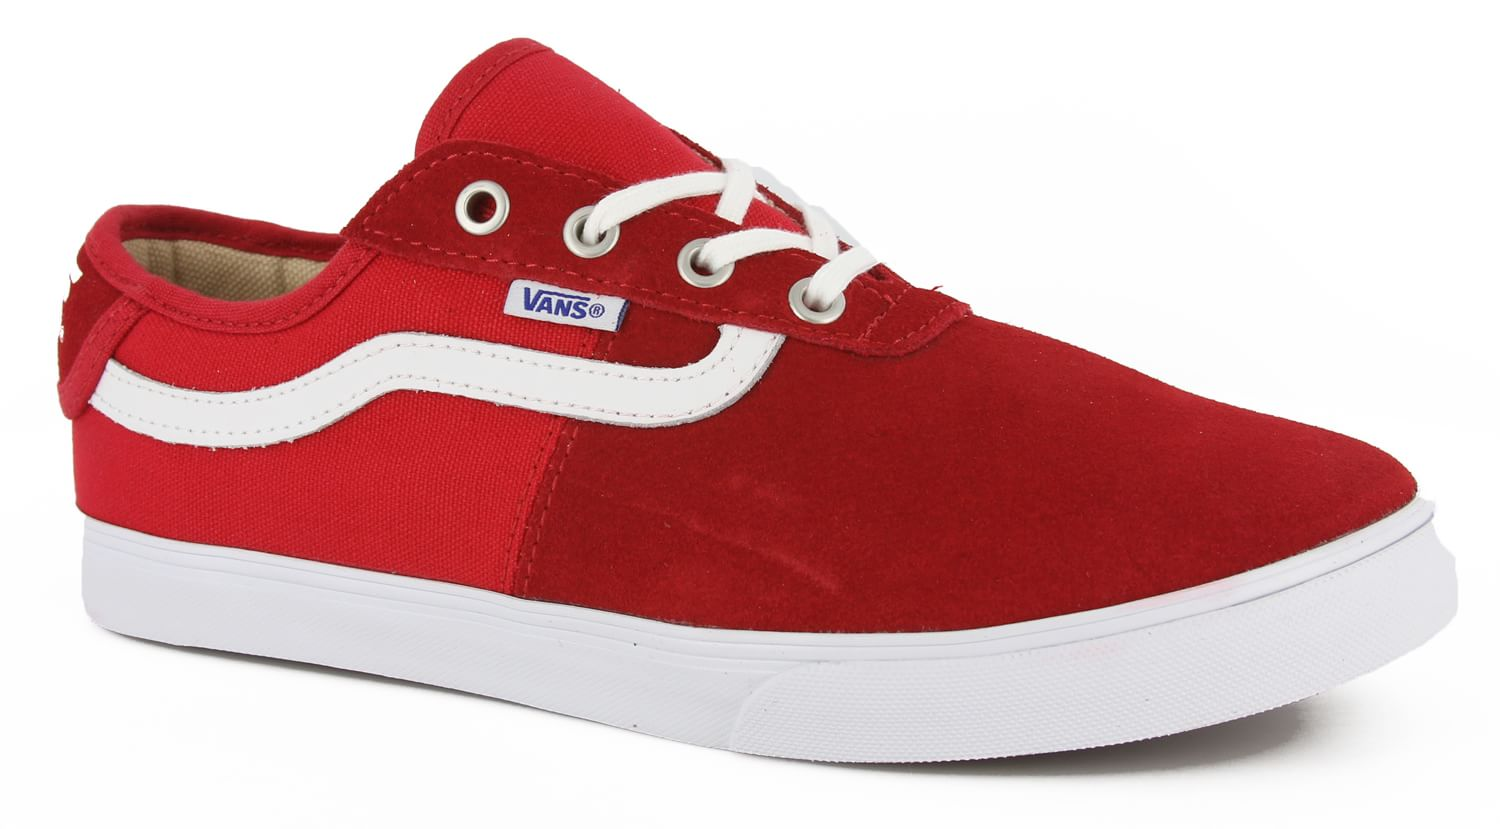 b4336bf12bb0b4 Vans Rowley Pro Red Available at Lazada for ₱ 2